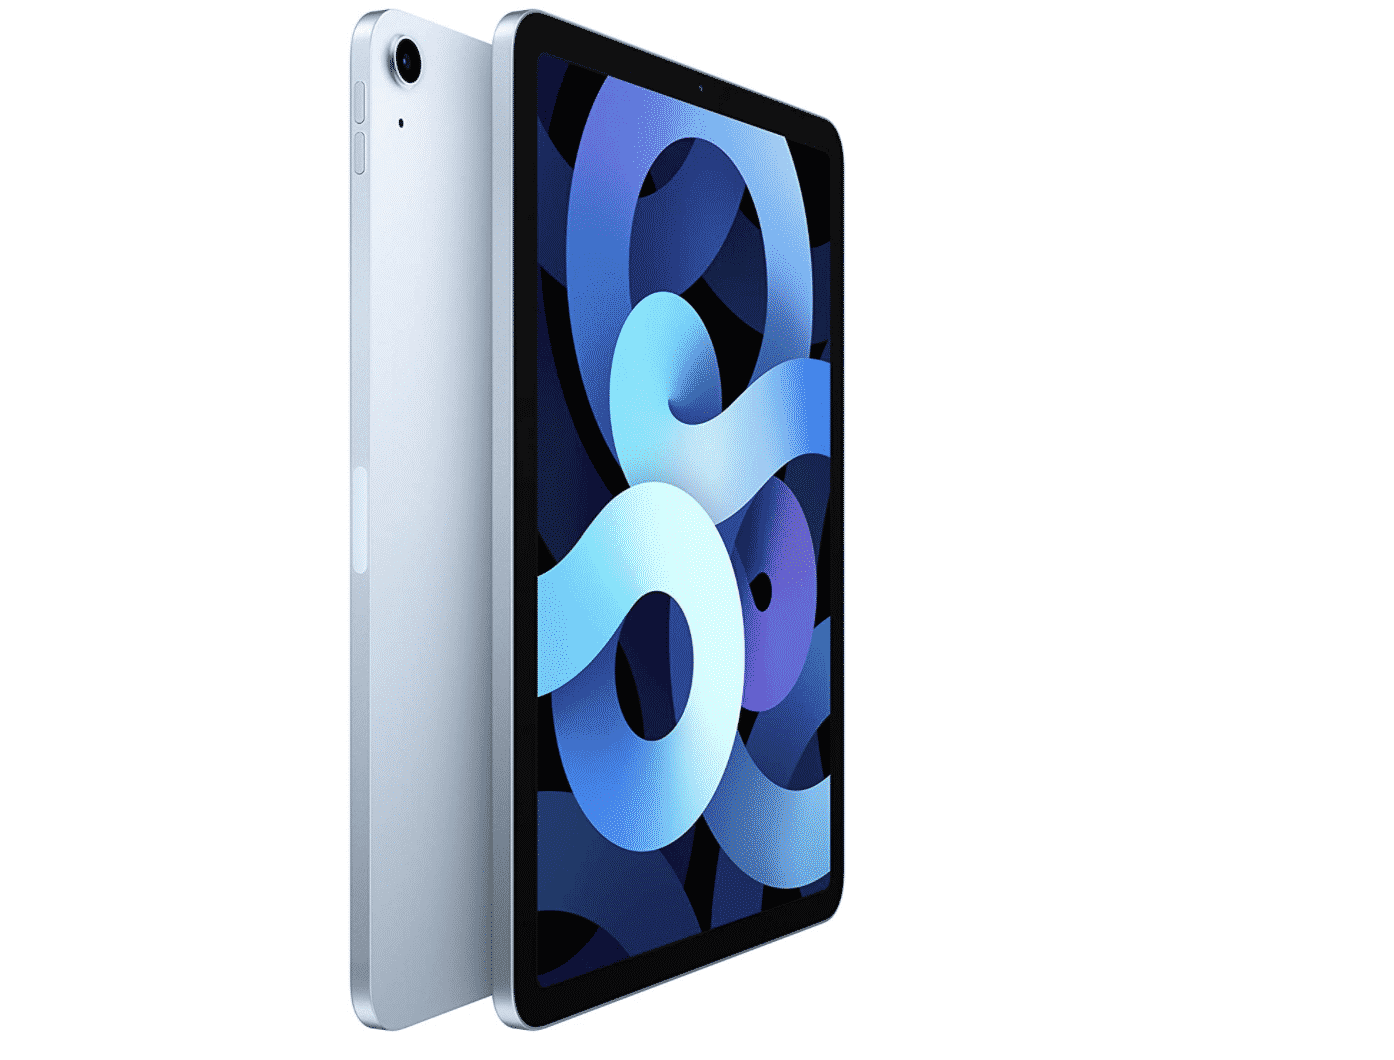 Save $50 when you upgrade to the 4th Gen 10.9-inch iPad Air